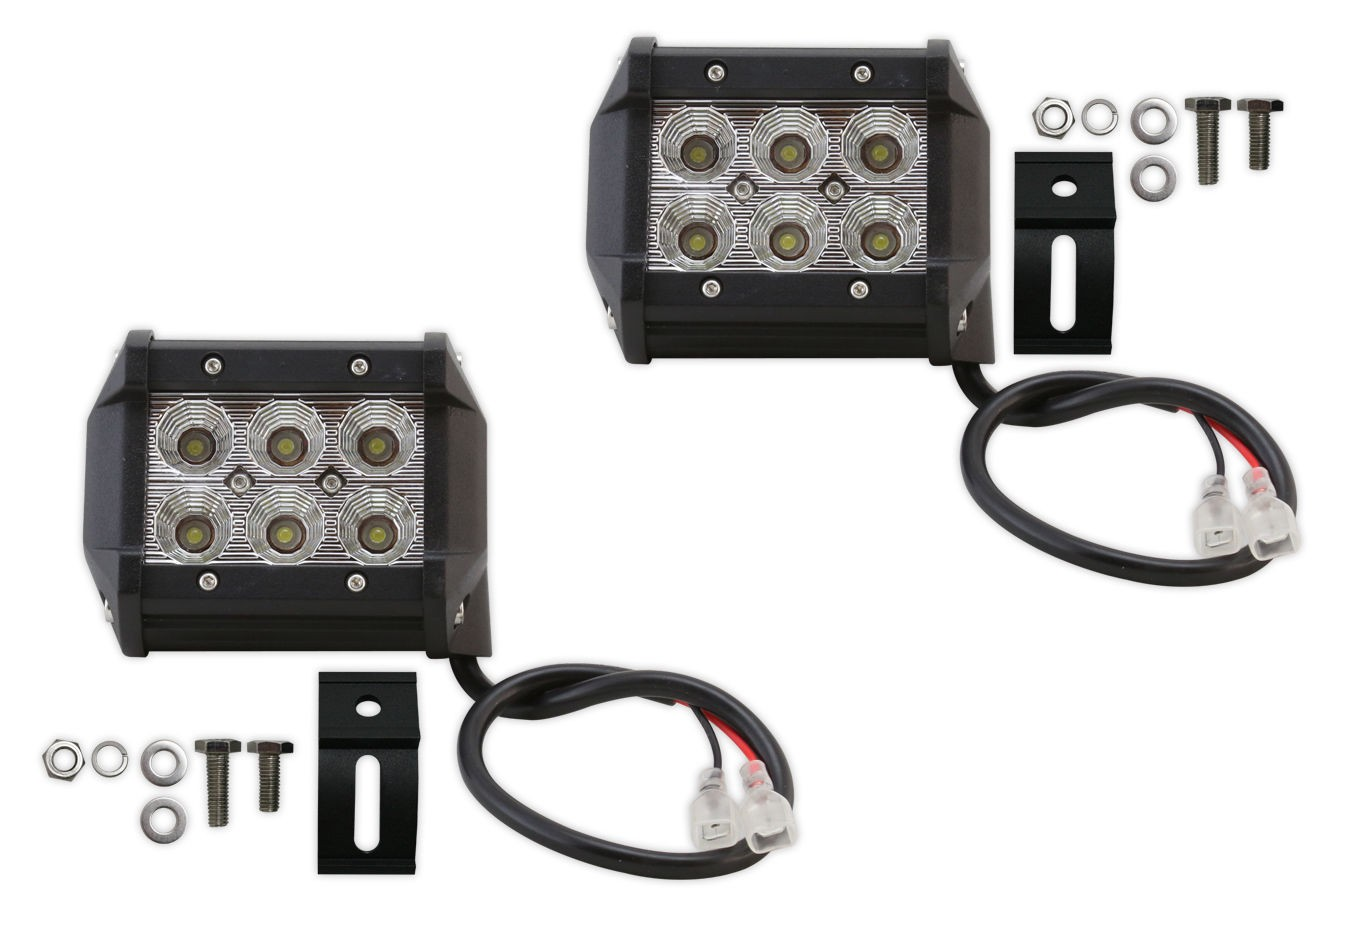 Pair of 4 Inch 18W Non Cree LED Flood Light Bar Driving Lamp Offroad Truck ATV